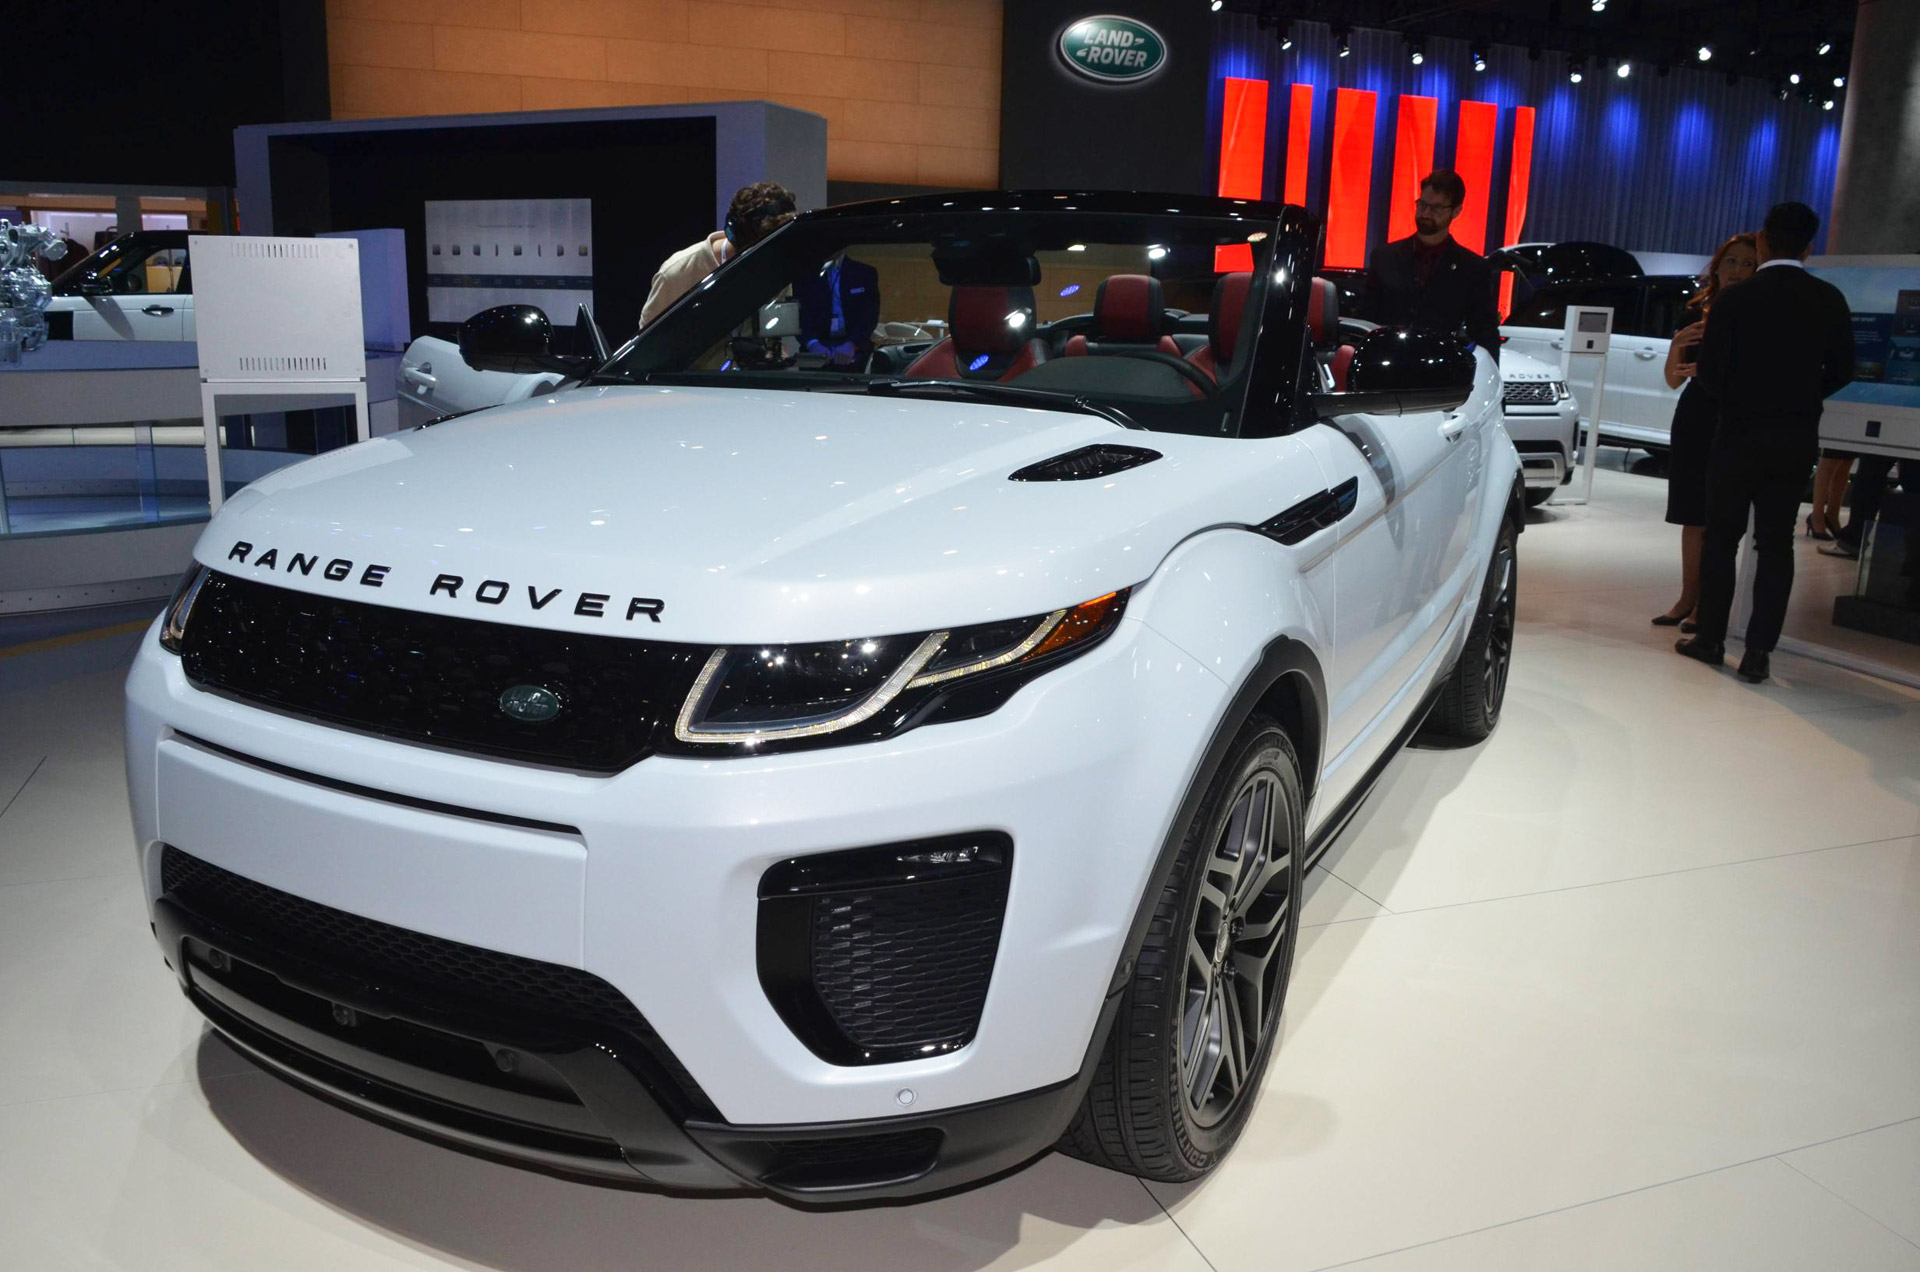 2017 Land Rover Range Rover Evoque Convertible Preview Video